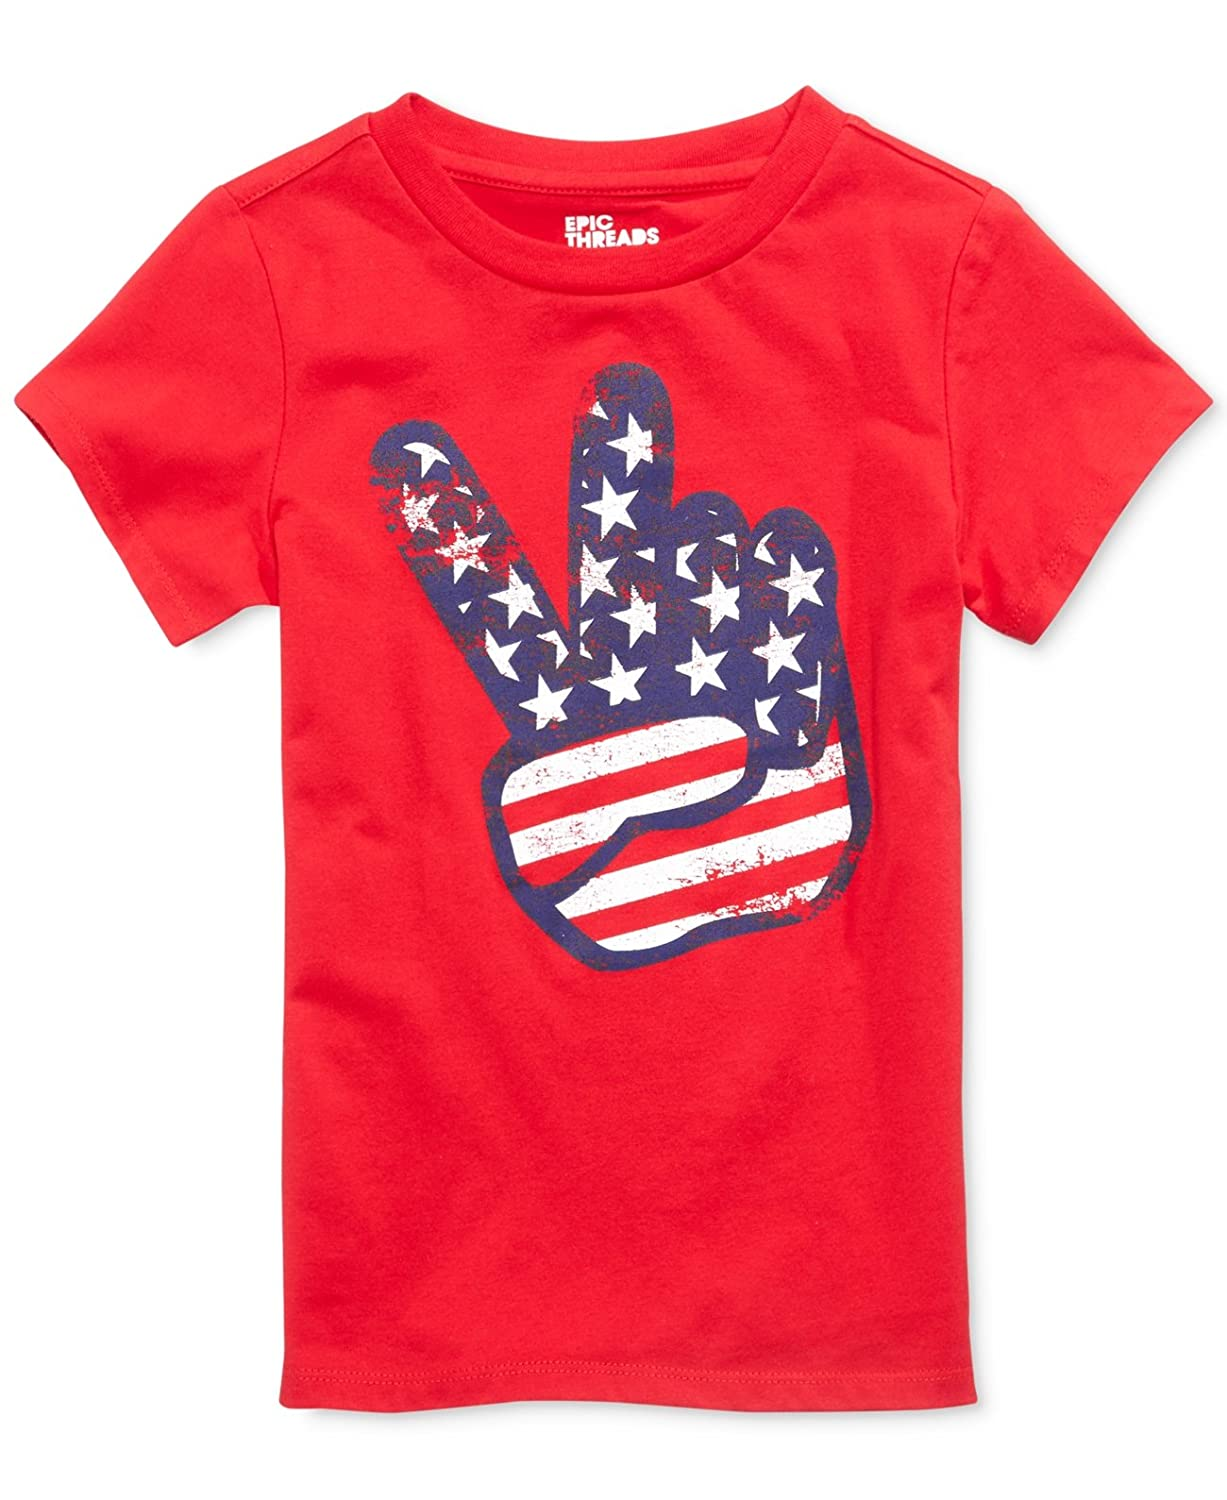 Size 4T//4 Red Toddler /& Little Boys Epic Threads Graphic-Print T-Shirt